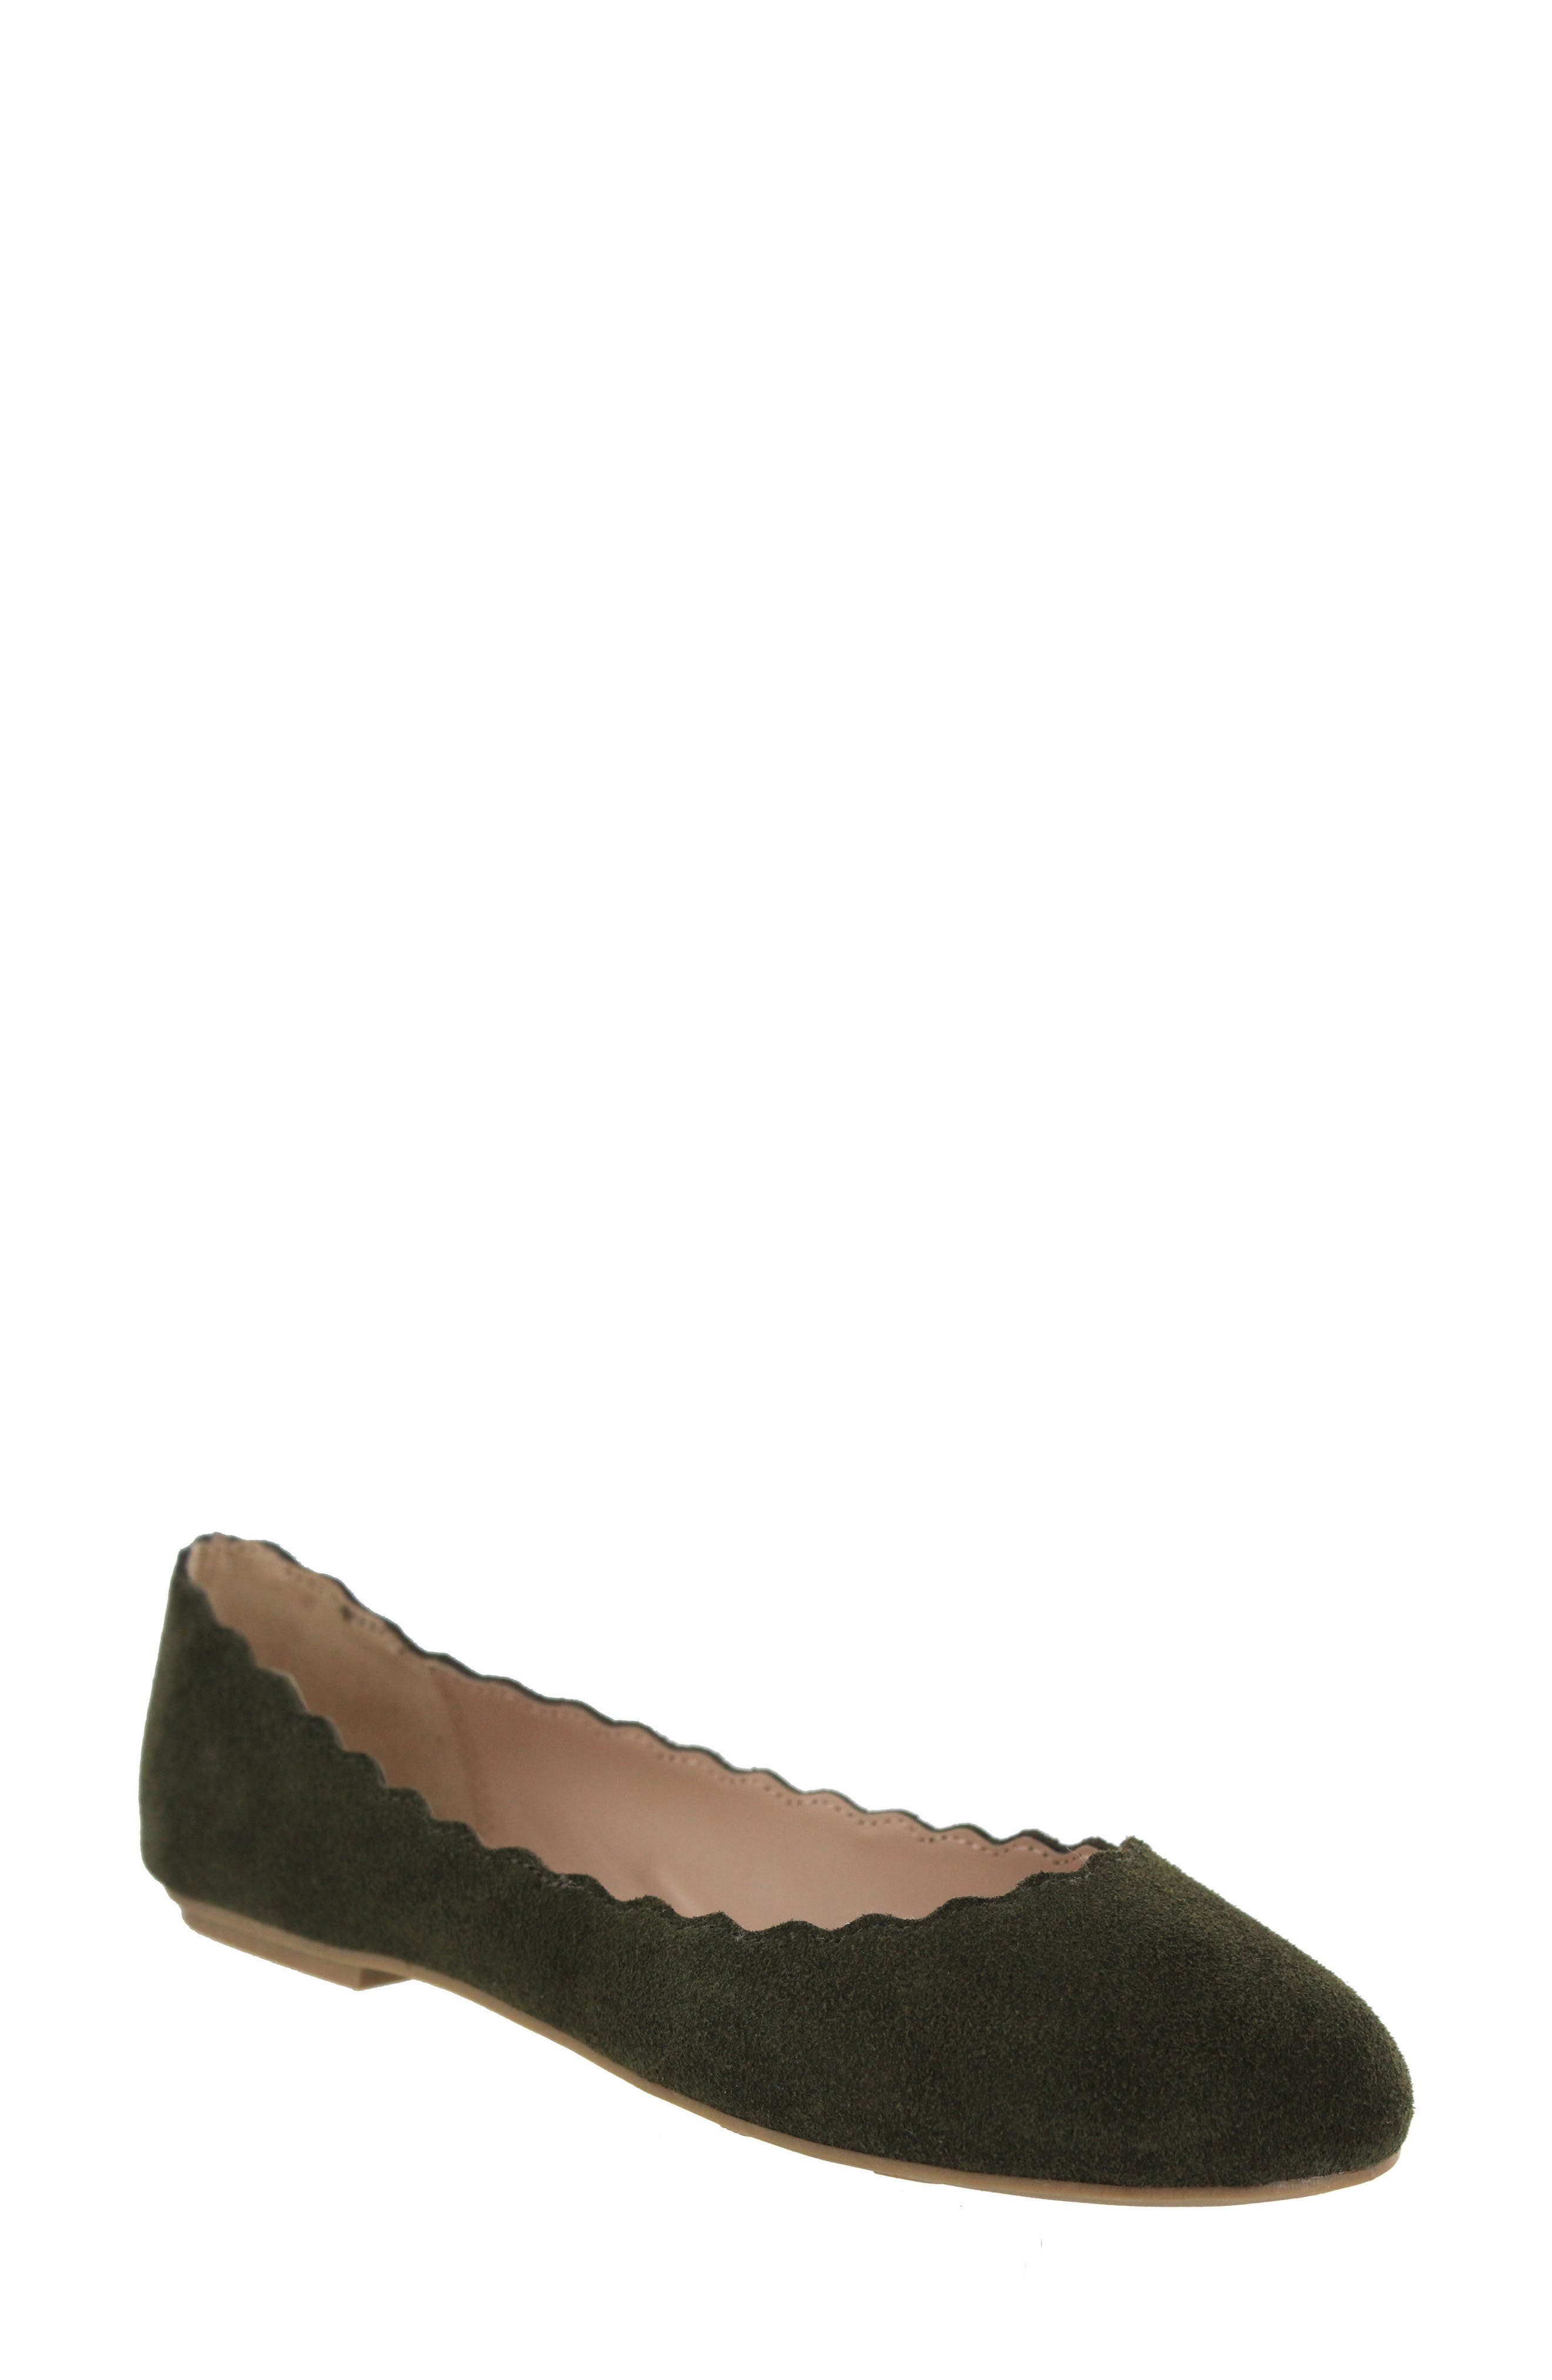 Gianna Scalloped Flat,                         Main,                         color, Olive